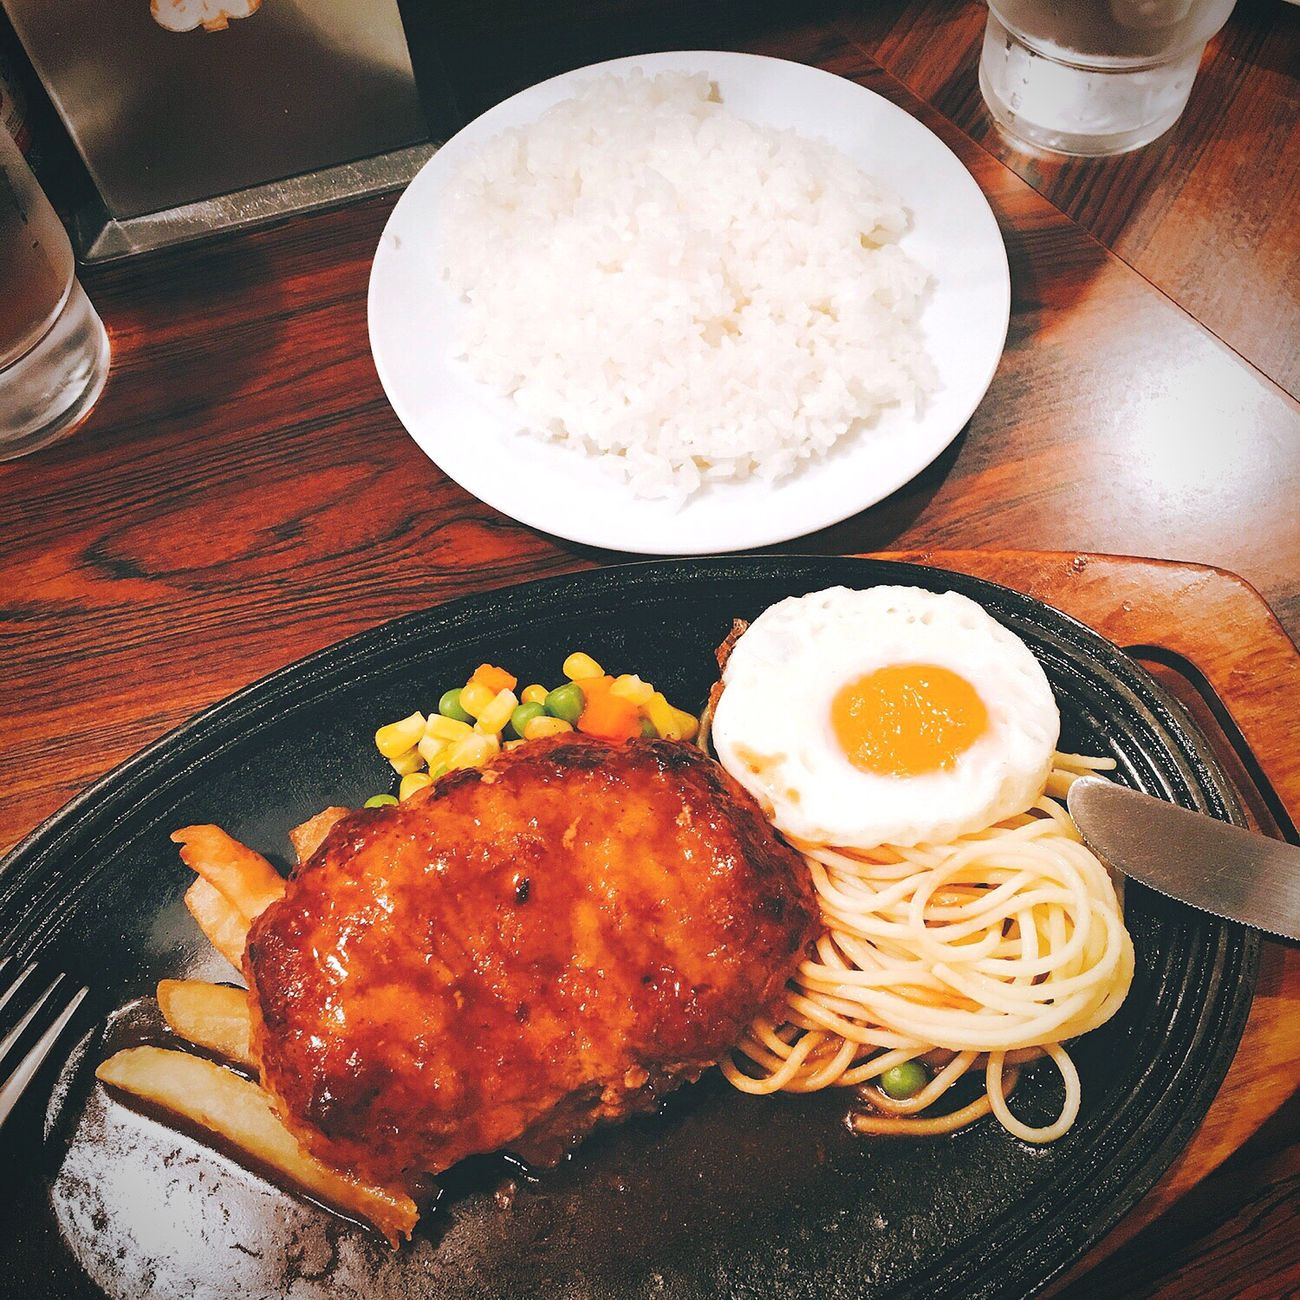 lunch〜🍴♡︎ Food Plate Food And Drink High Angle View Ready-to-eat Indoors  Fried Fried Egg Table No People Meat Egg Yolk Fast Food Day ハンバーグ Salisbury Steak Hamburg Steak Lunch ランチ